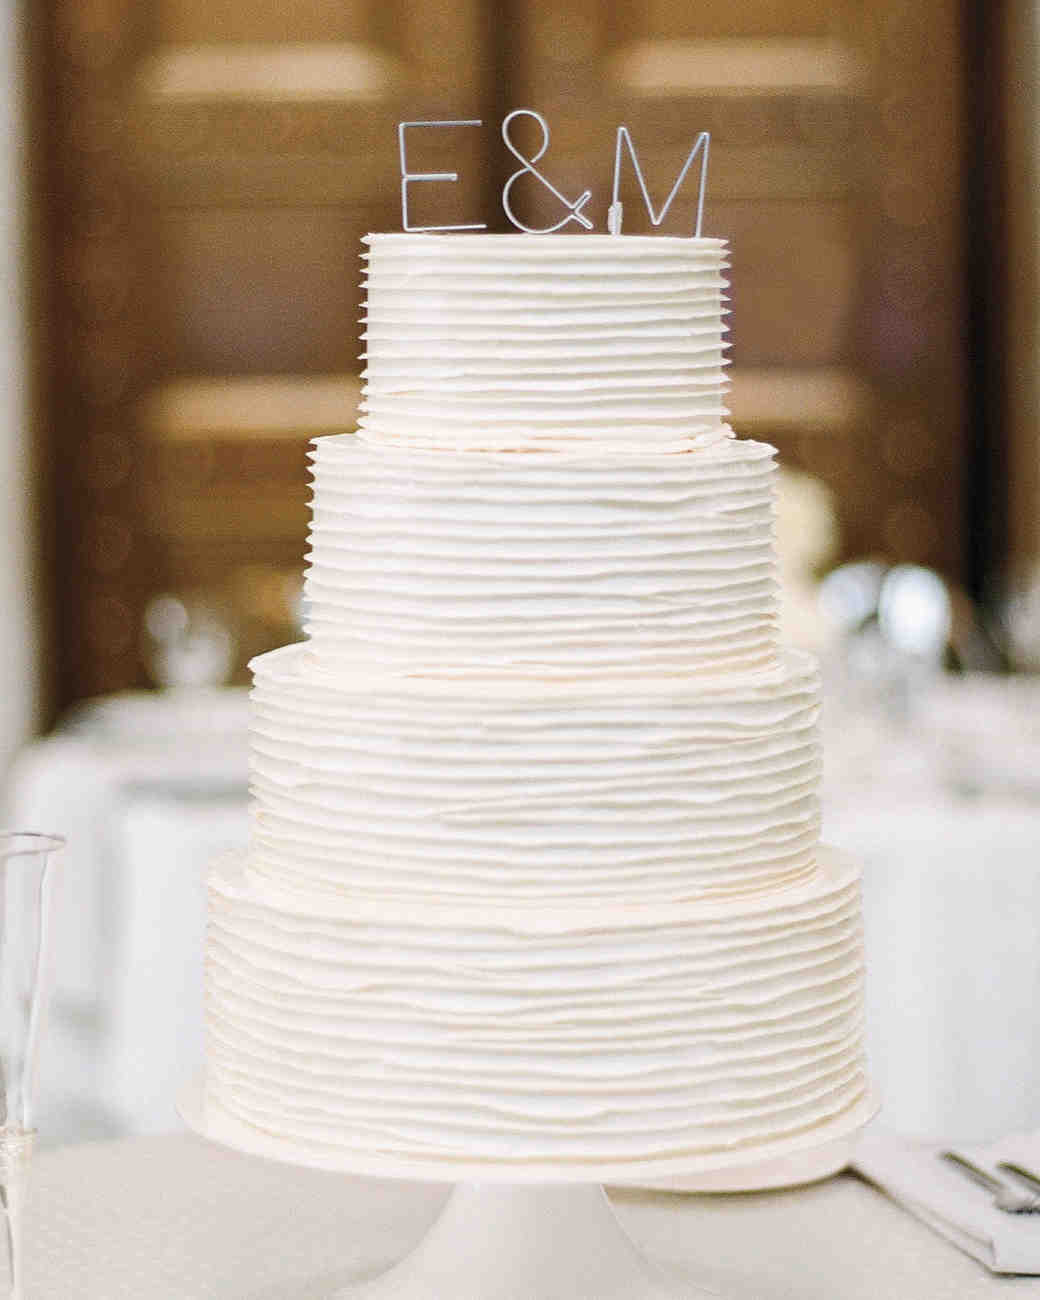 White Wedding Cake with Initial Topper